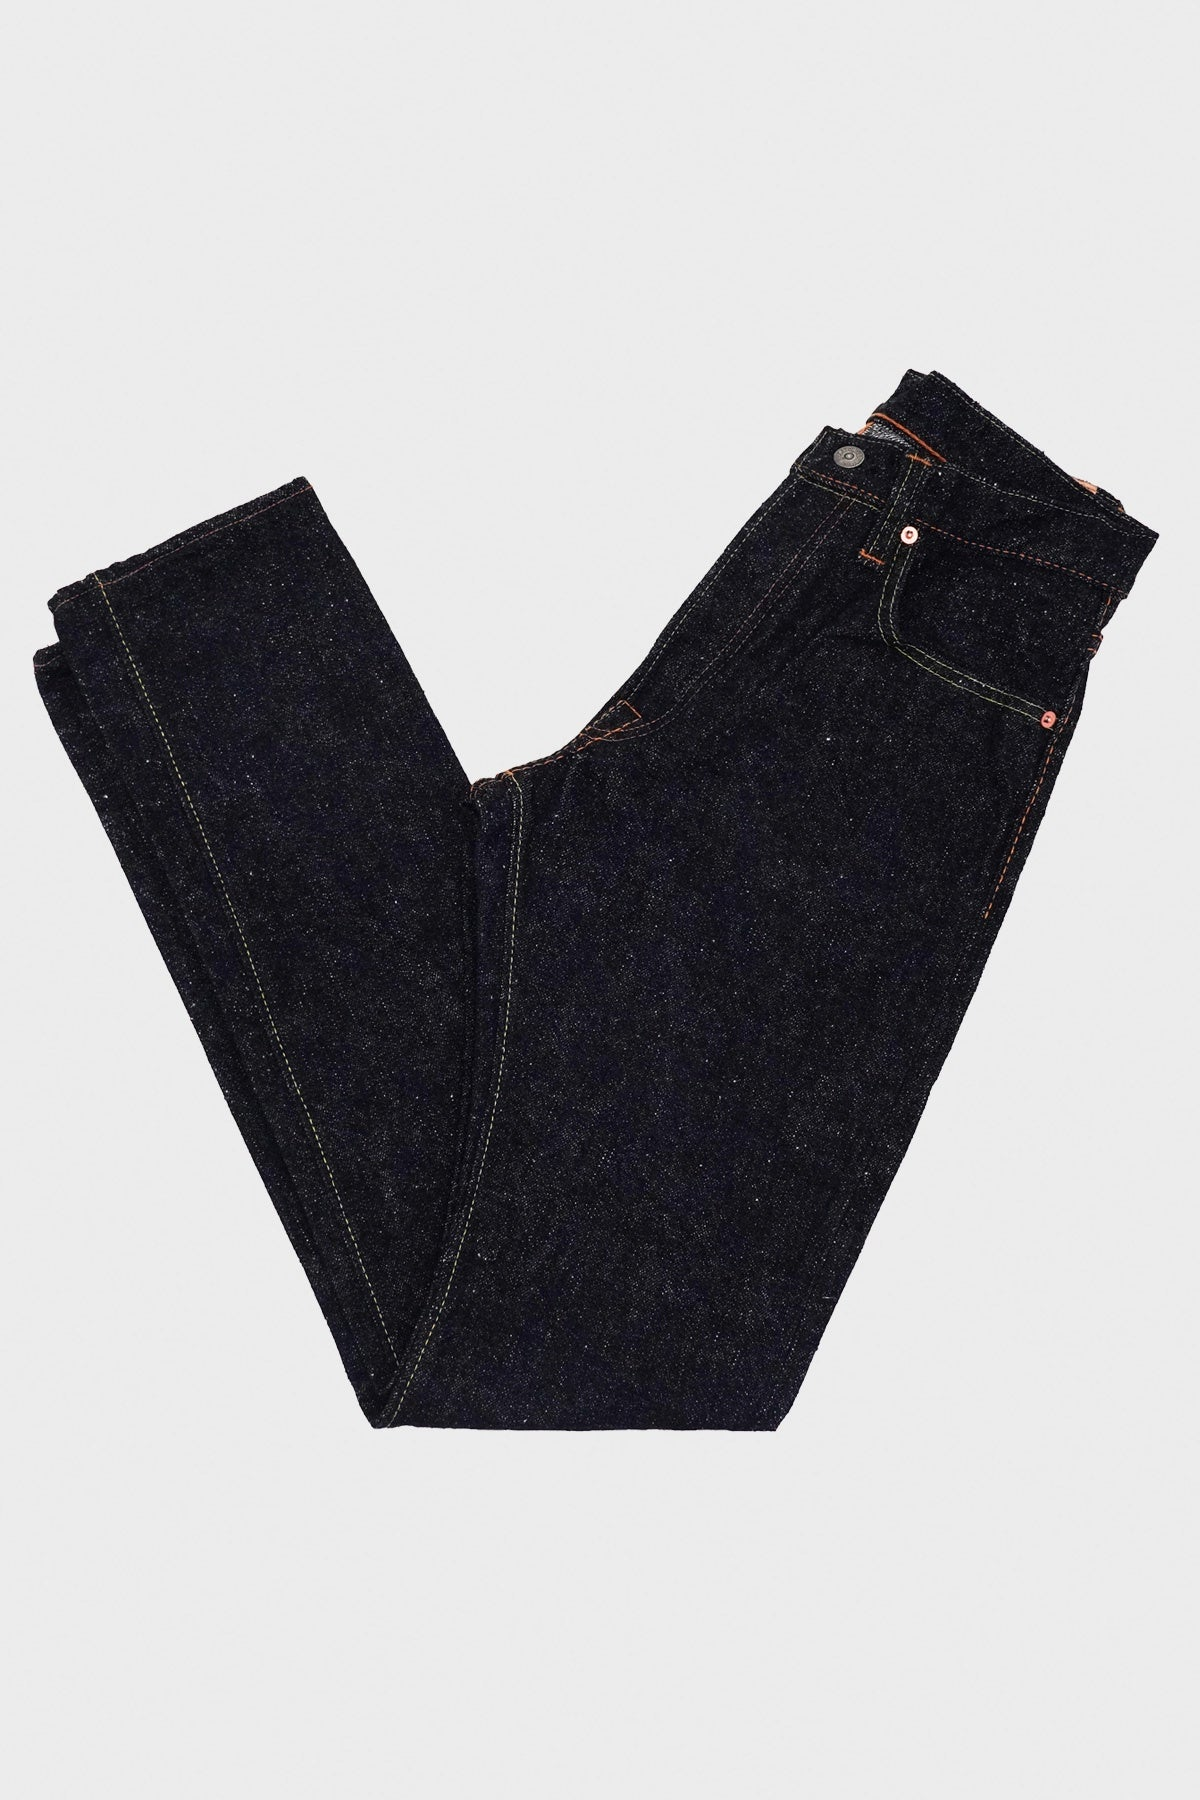 Pure Blue Japan - Relaxed Tapered - Super Rough Denim - Canoe Club